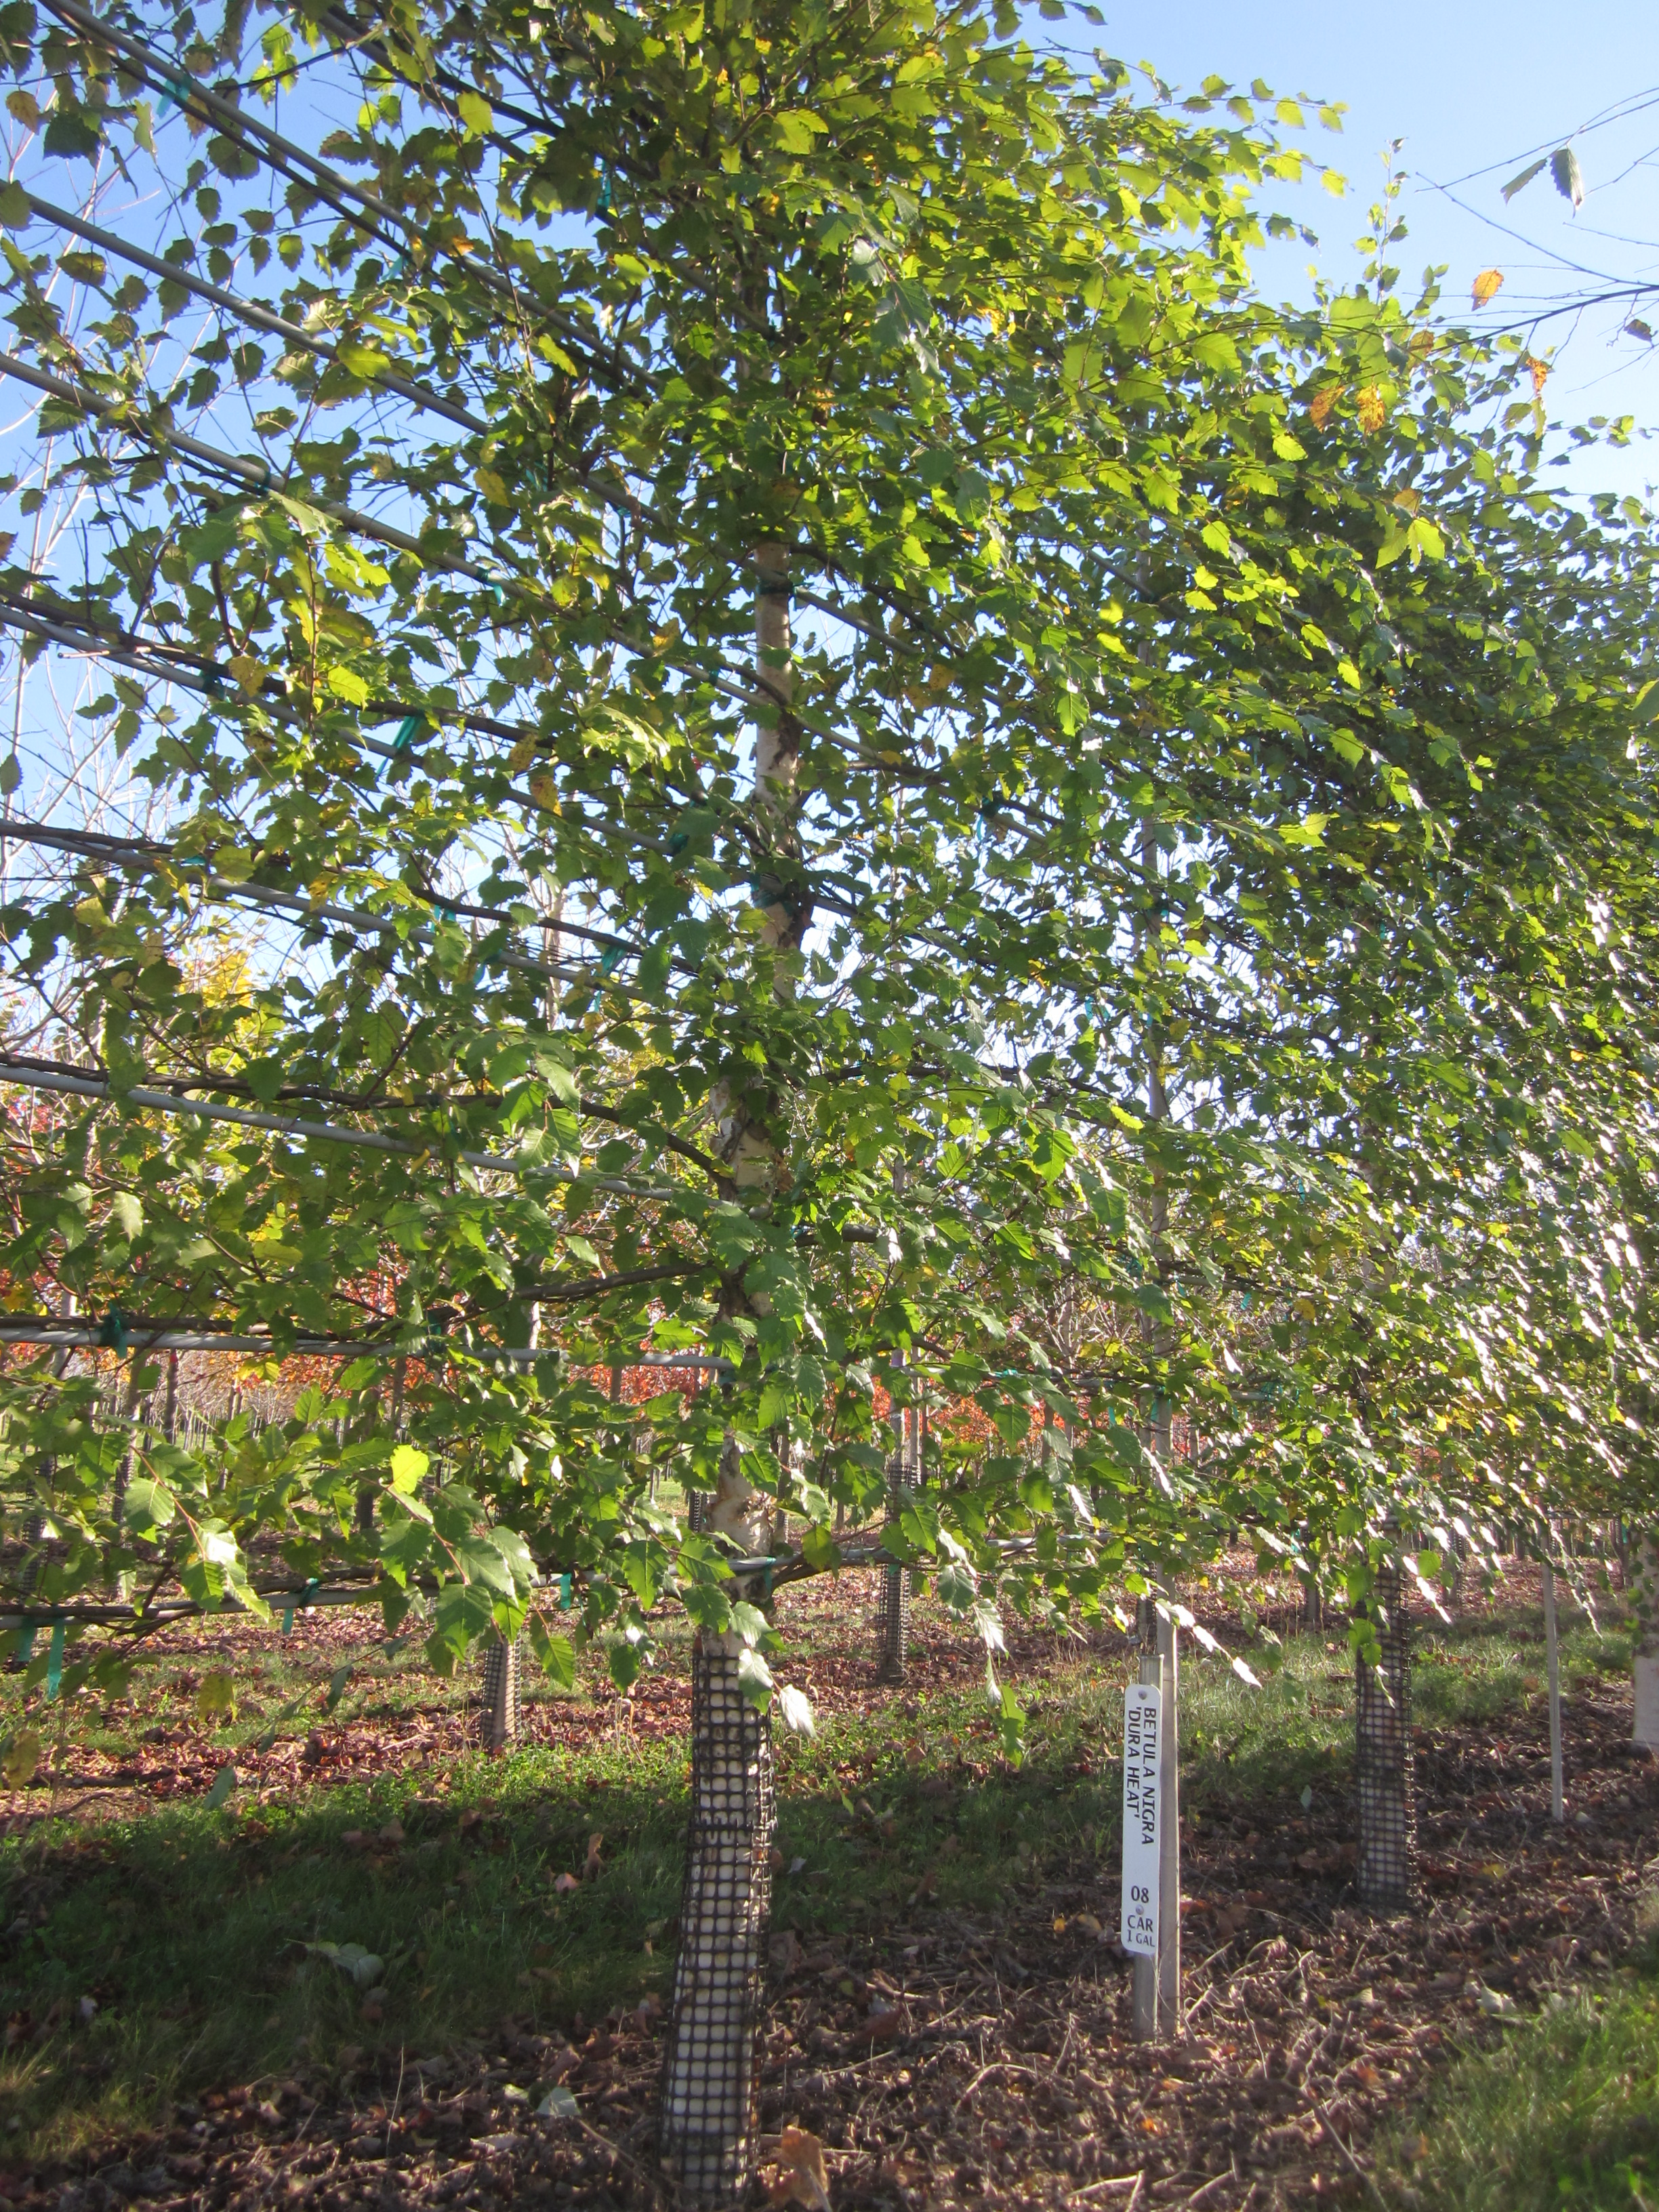 The nursery is experimenting with training different species, like these river birches, into espalier.